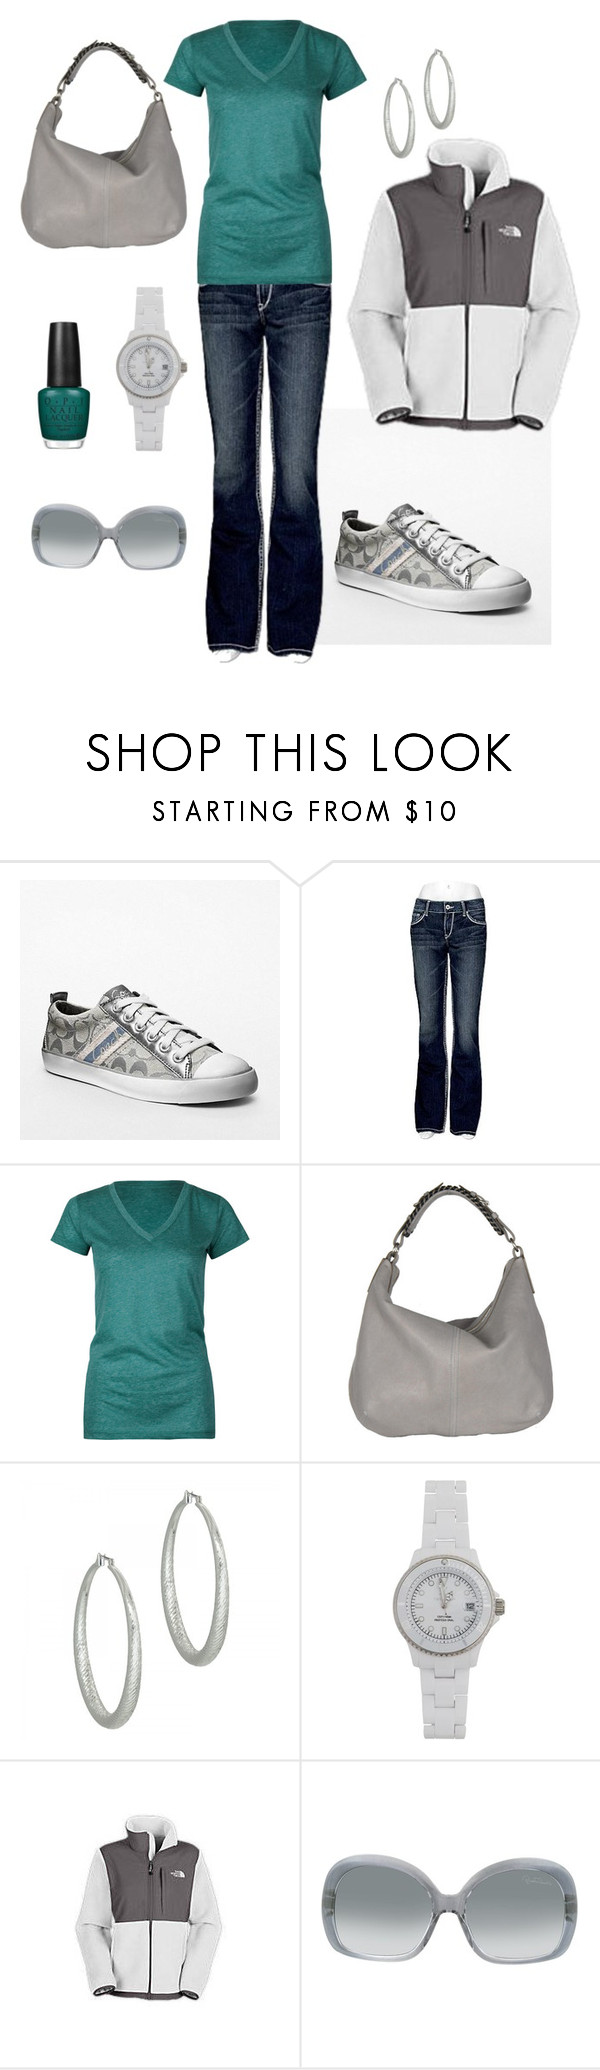 """Untitled #48"" by bbs25 ❤ liked on Polyvore featuring moda, Coach, Silver Jeans Co., Full Tilt, Alexander McQueen, Kenneth Jay Lane, Toy Watch, The North Face, Roberto Cavalli e OPI"